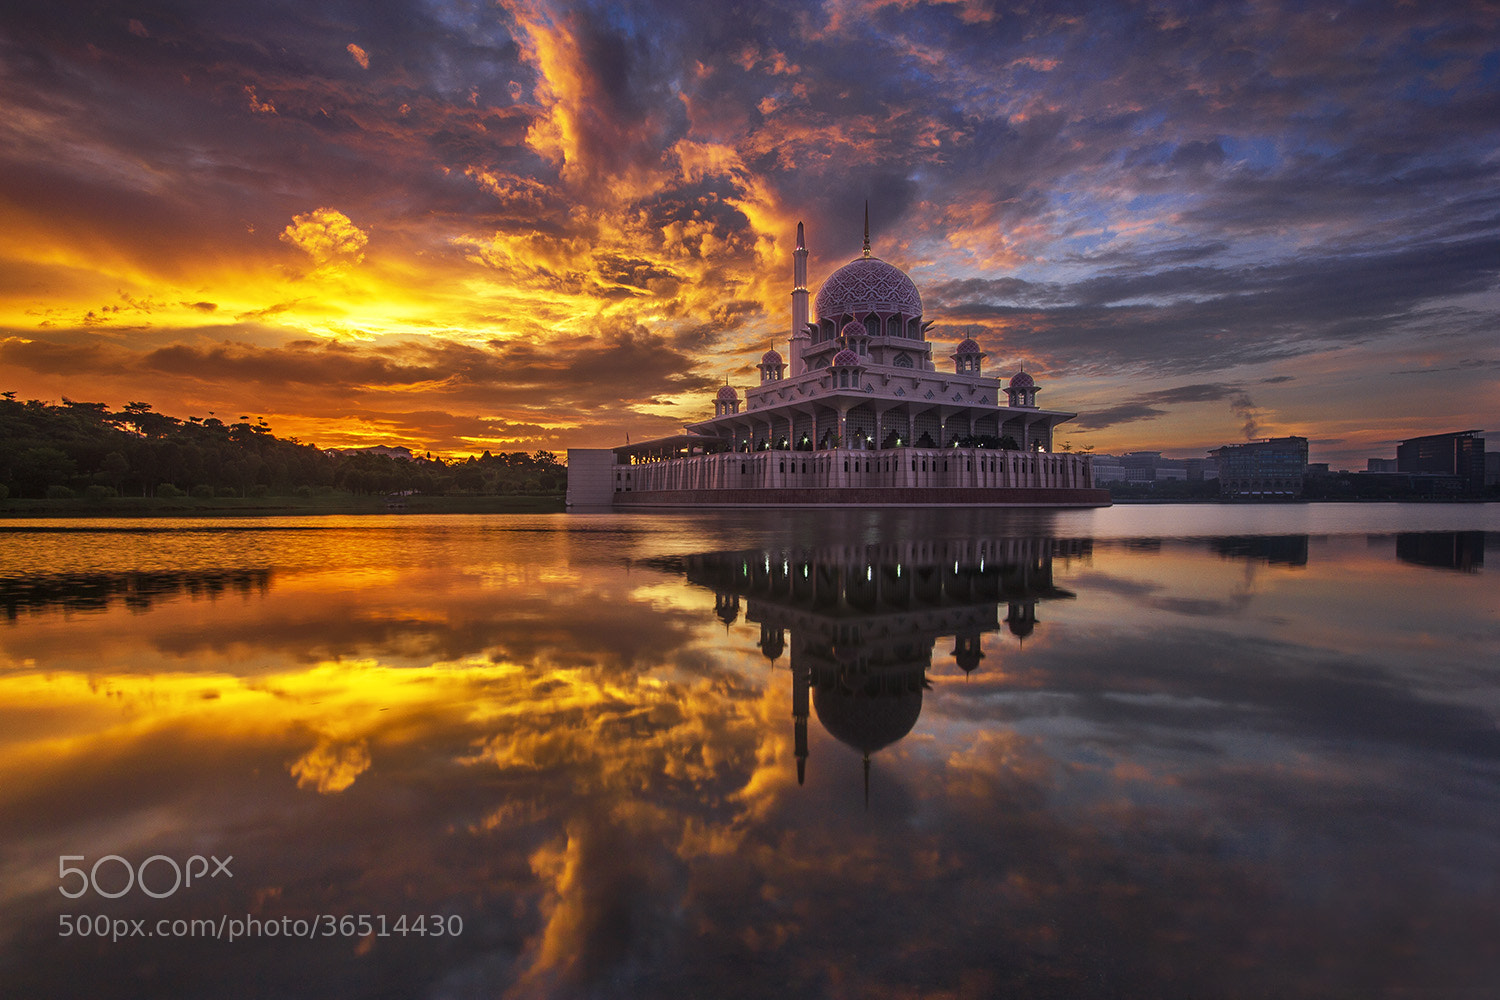 Photograph The Sunrise by farizun amrod on 500px